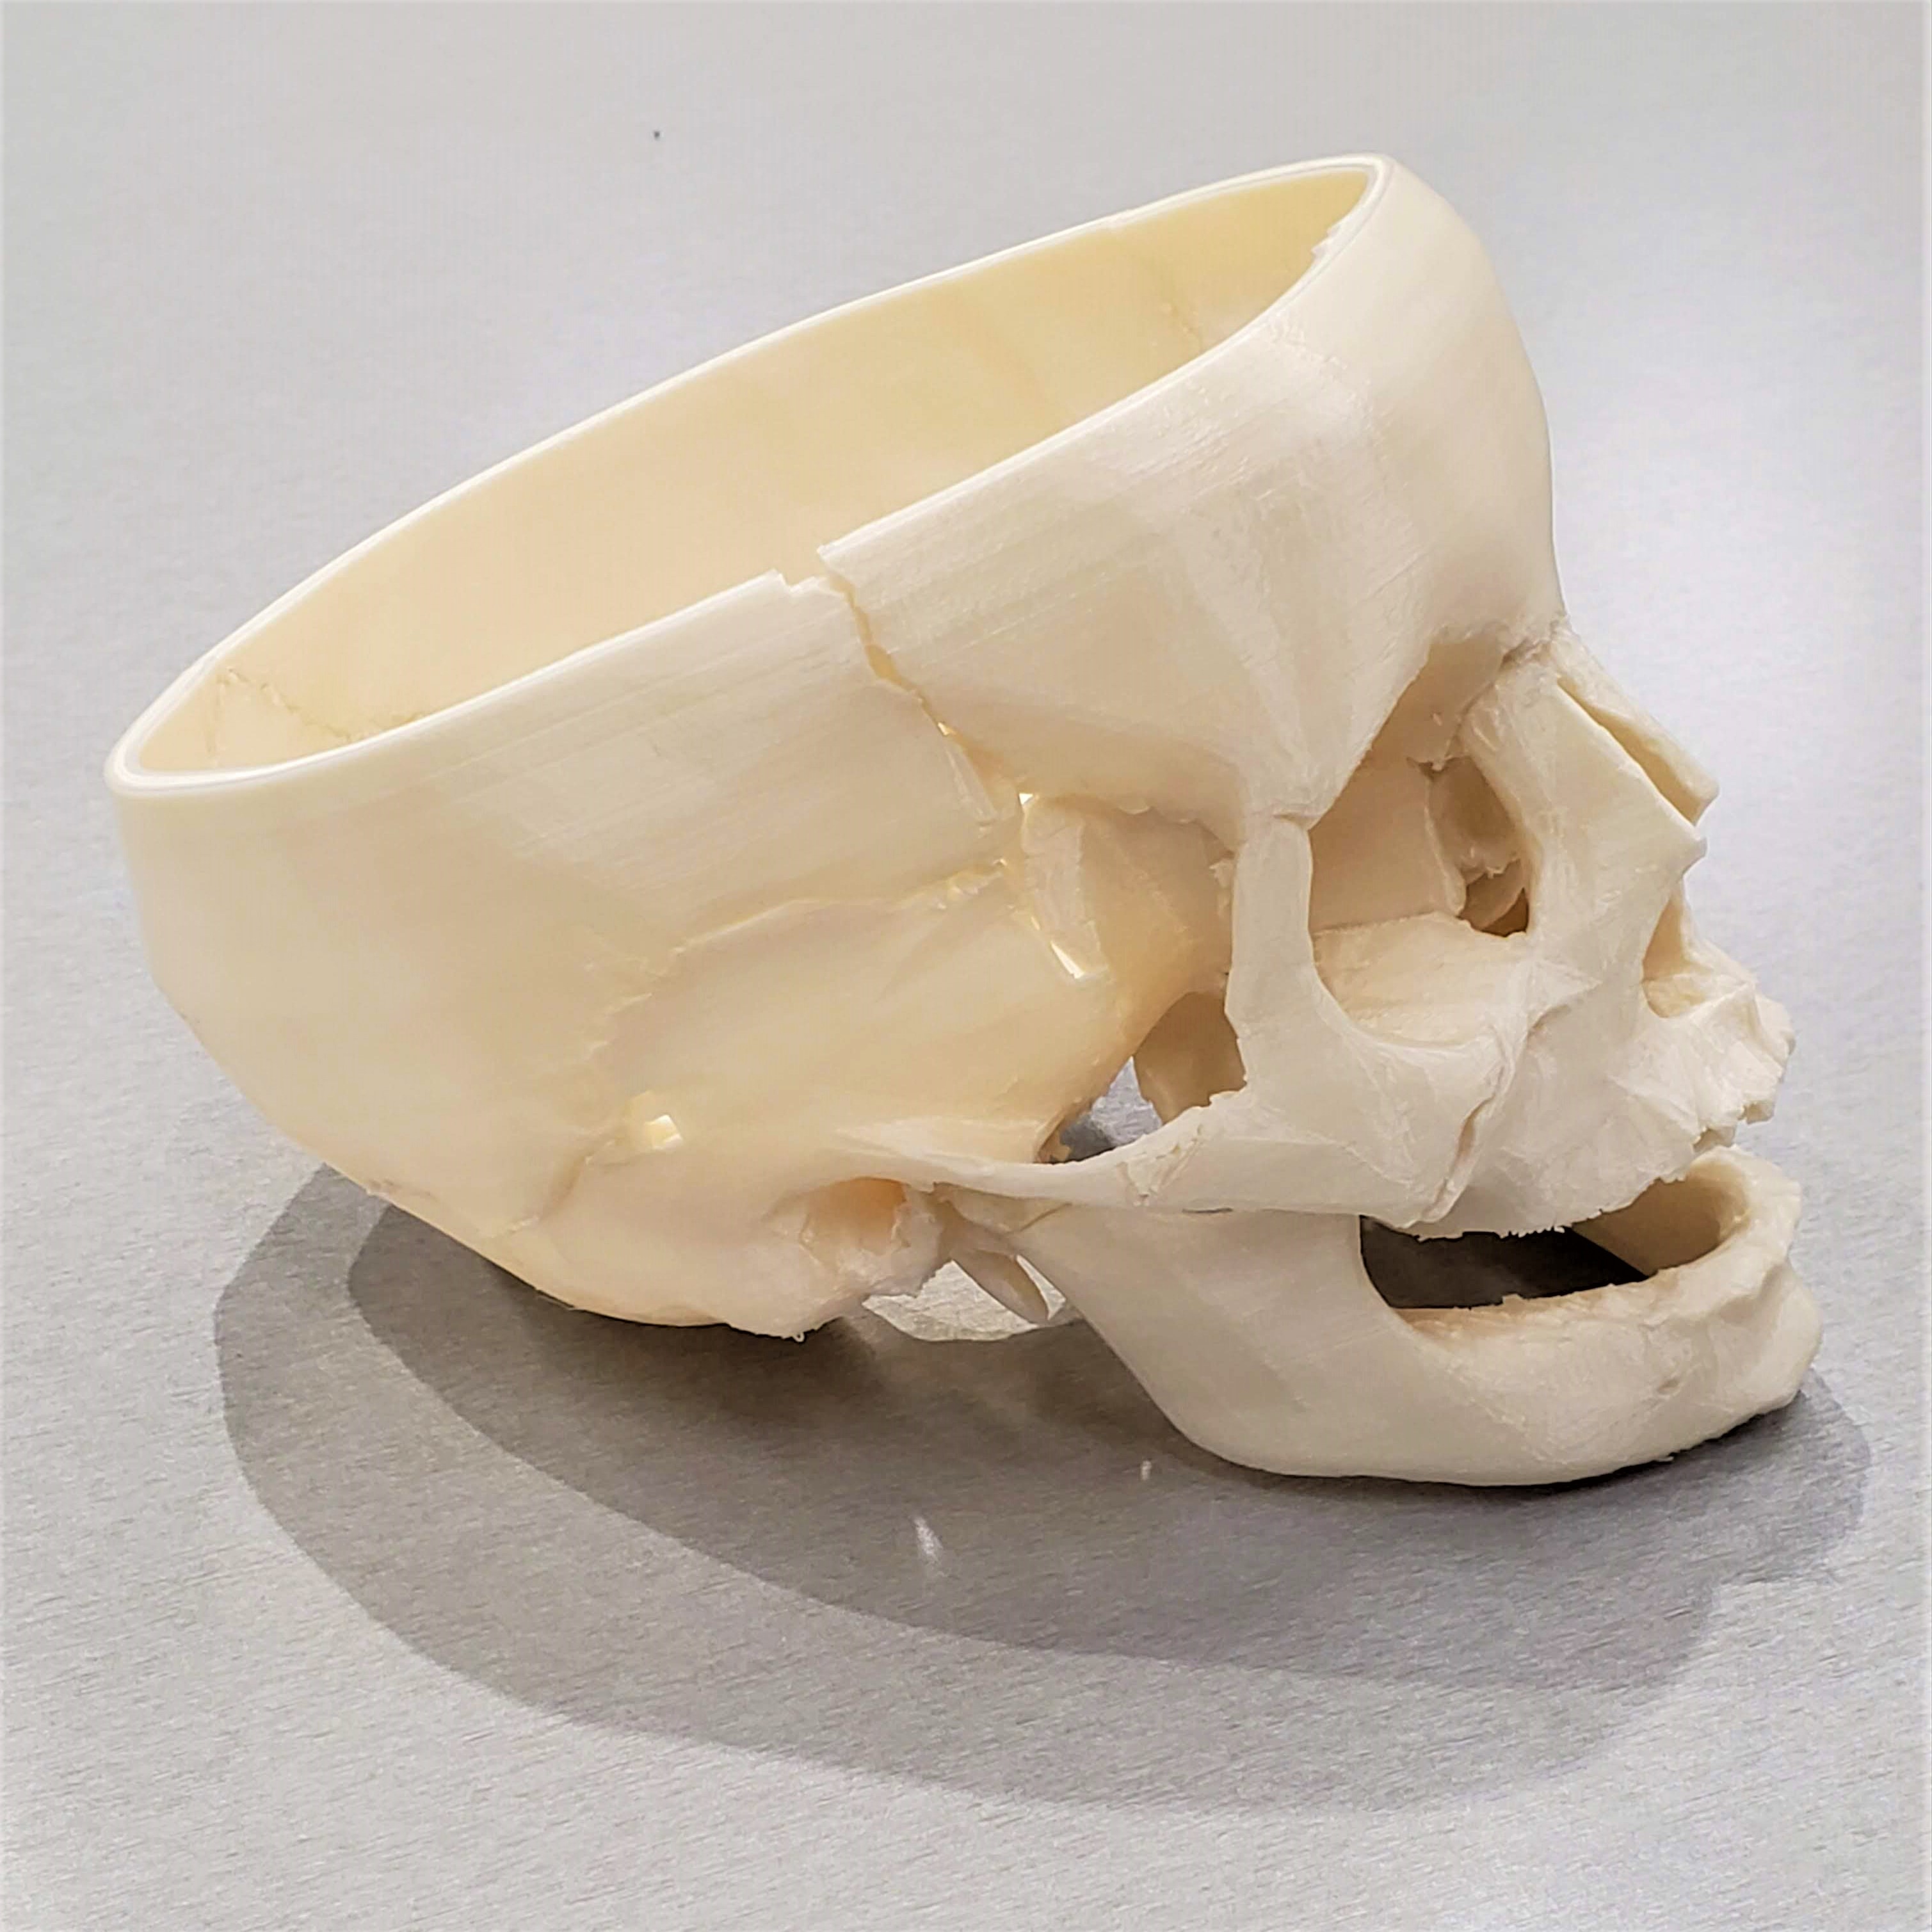 3D printed skull without top